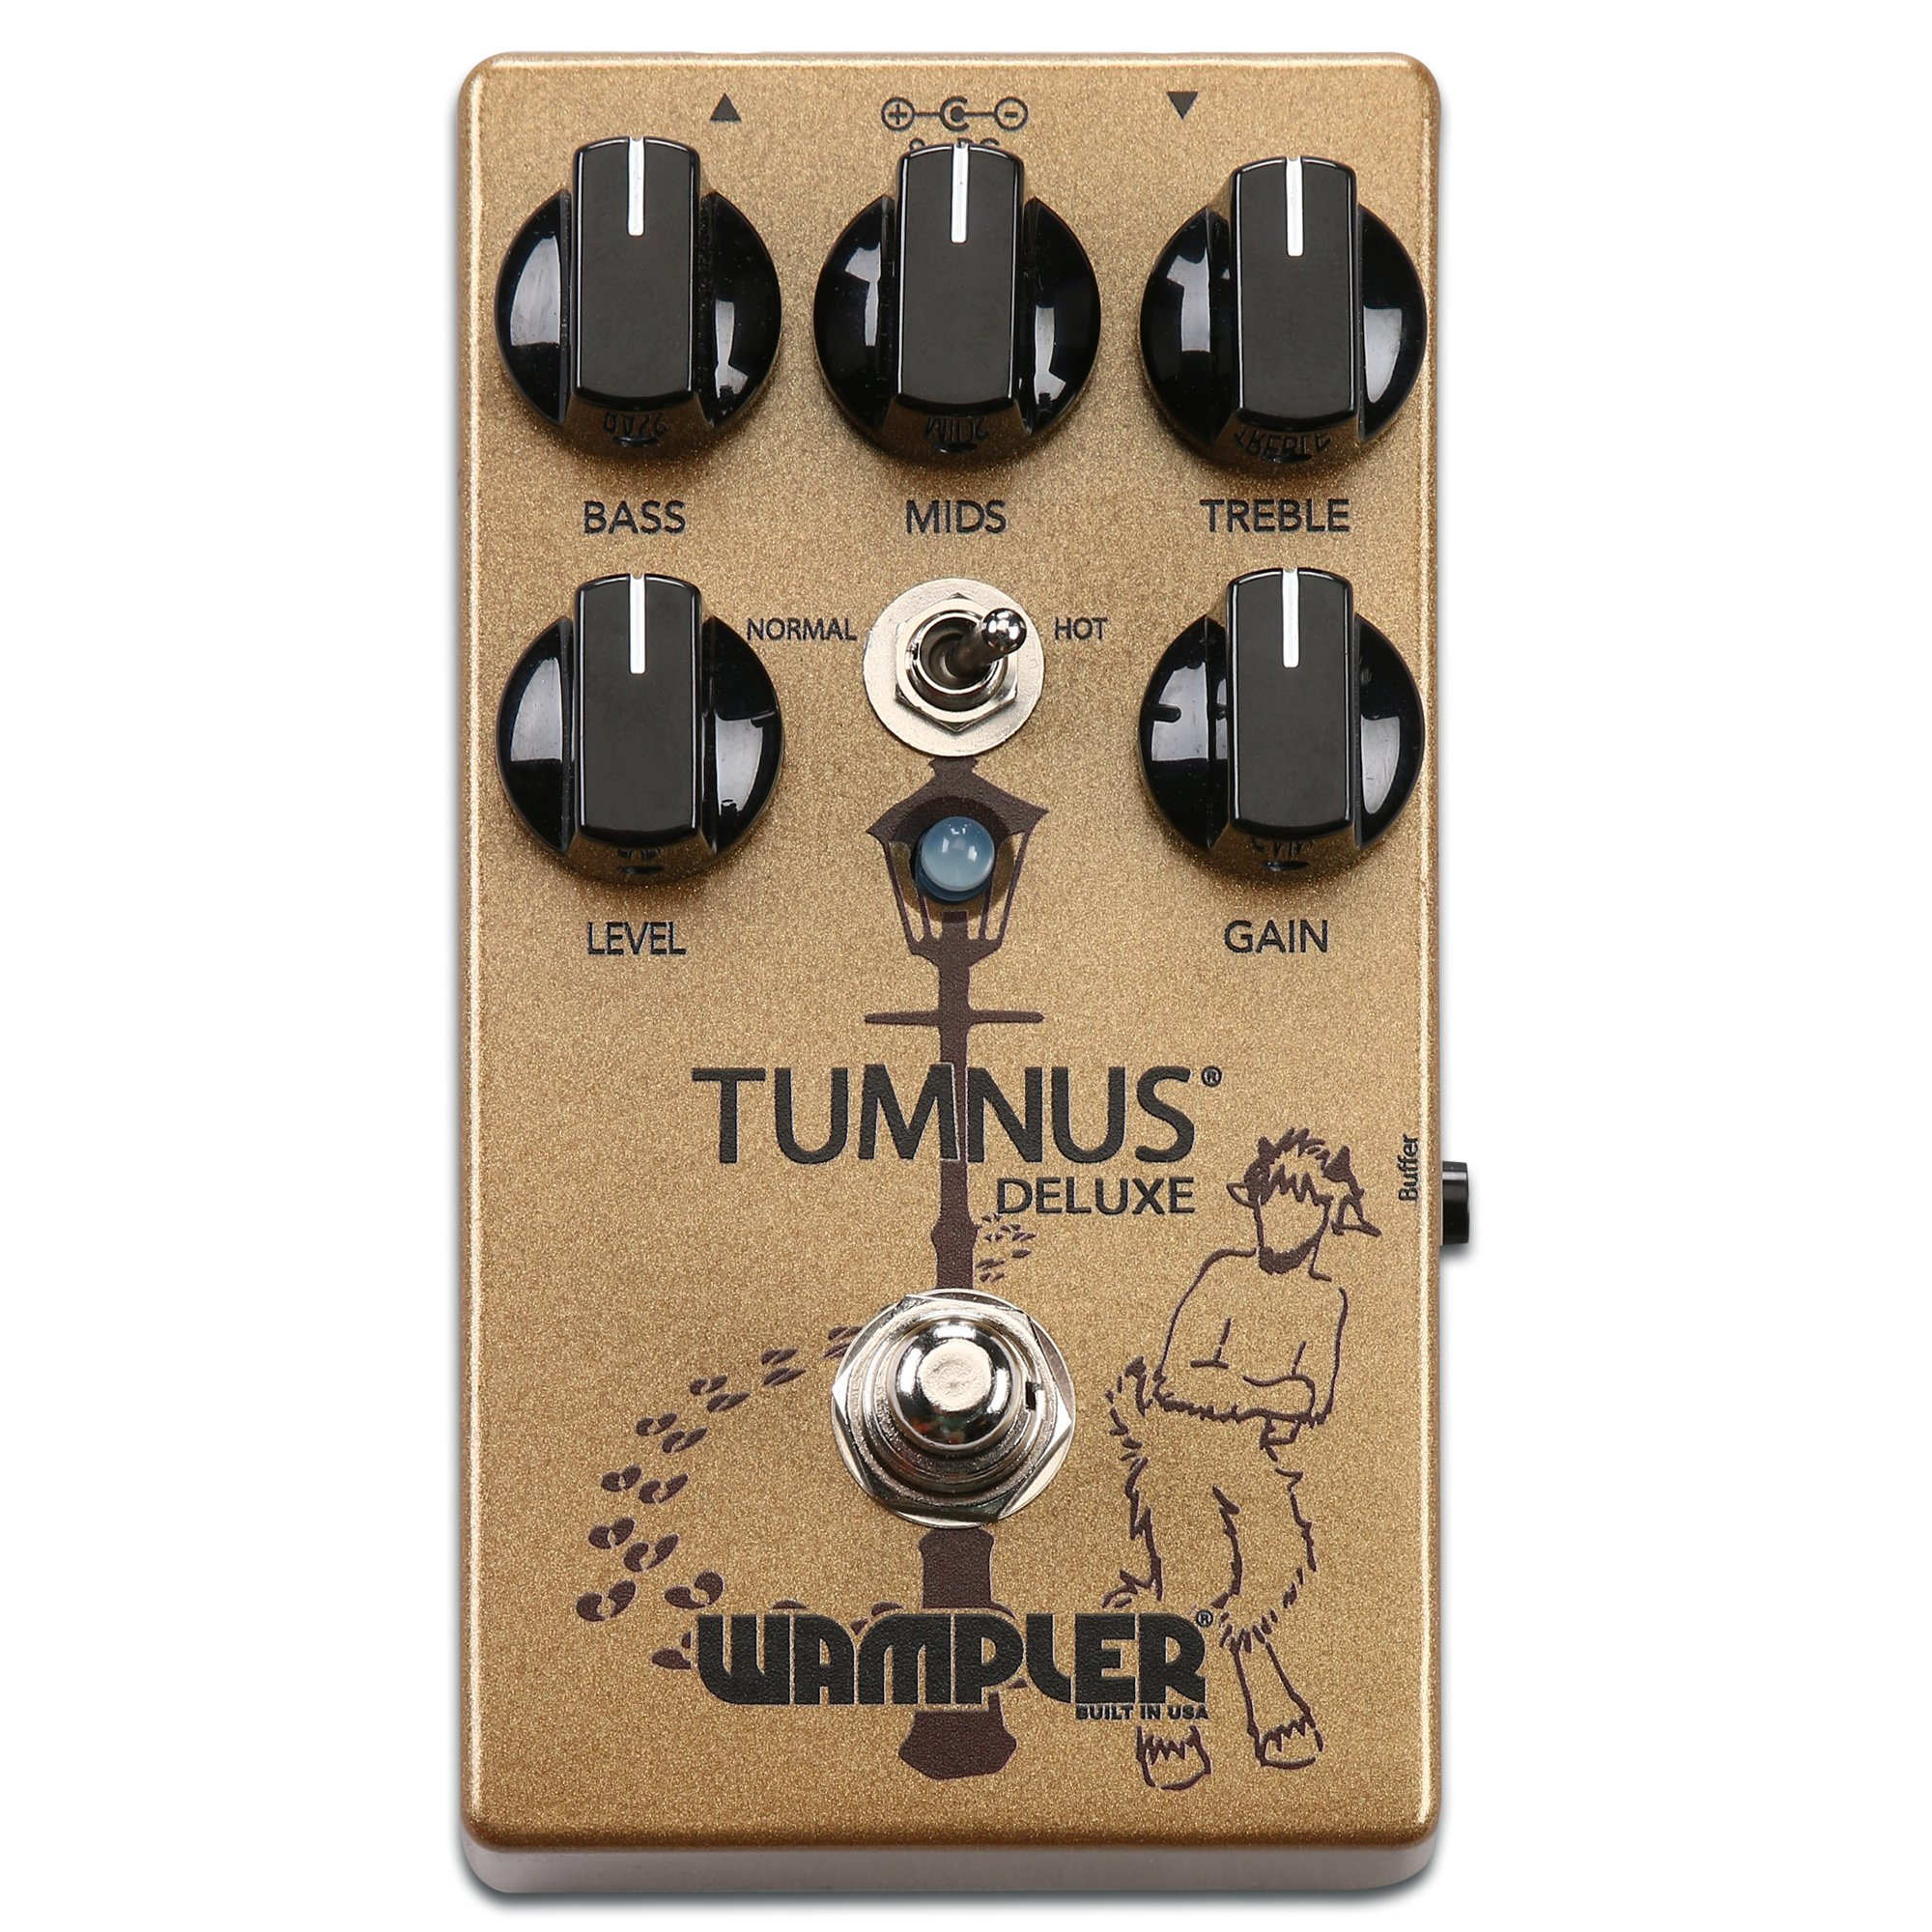 Wampler TUMNUSDLX Tumnus Deluxe Overdrive Pedal by Wampler